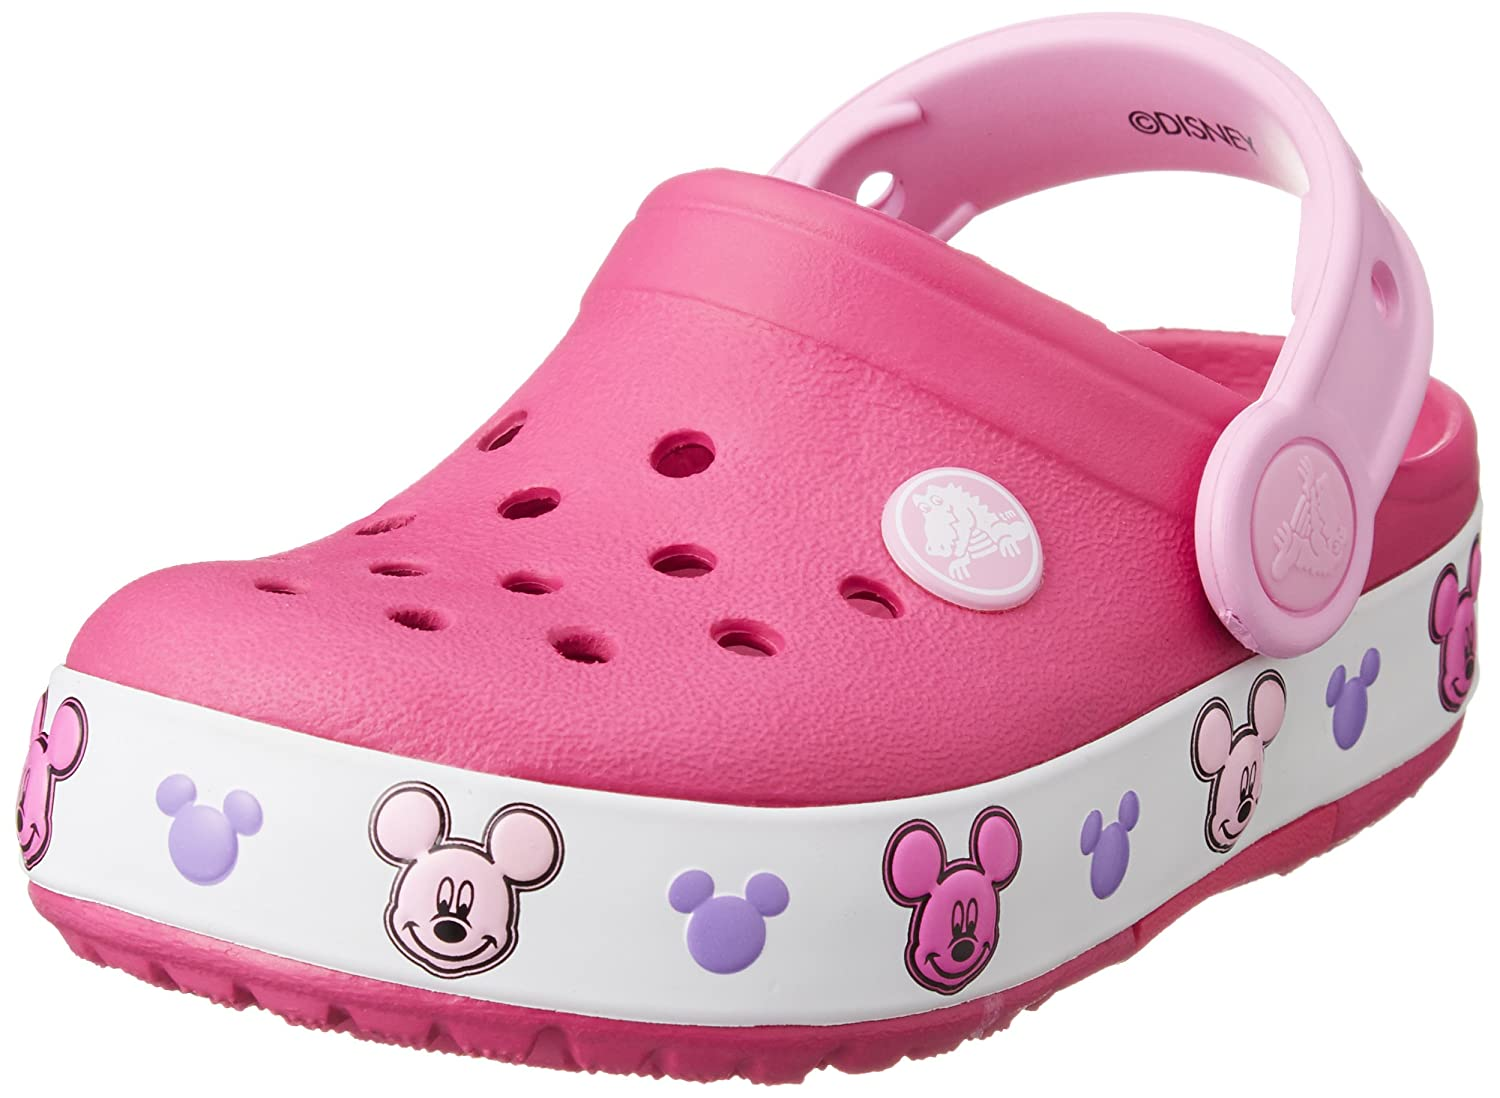 Clothing, Shoes & Accessories Beautiful Pink Crocs Infant Size 6 Kids' Clothing, Shoes & Accs